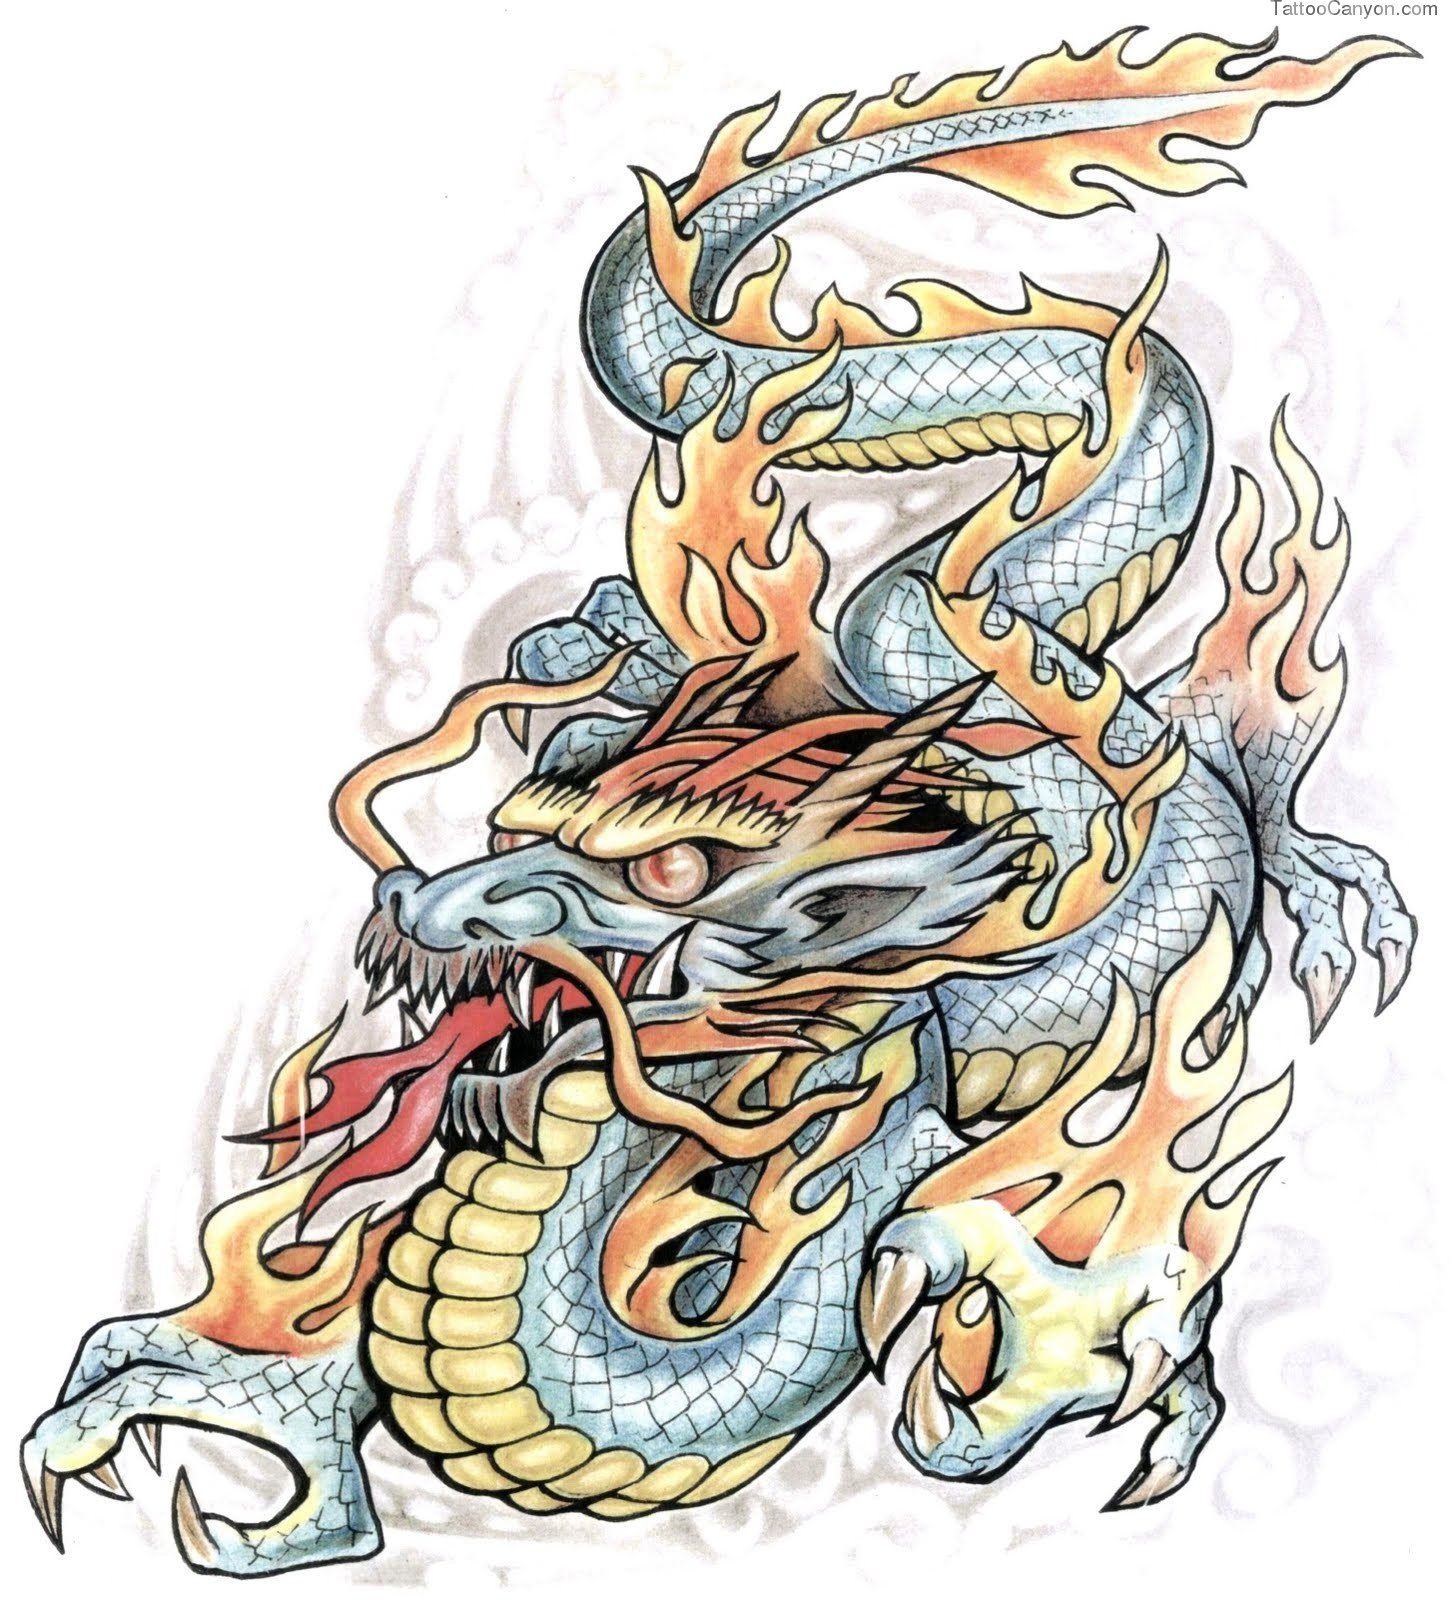 Chinese Dragon On Fire Tattoo Design Tattoology Free